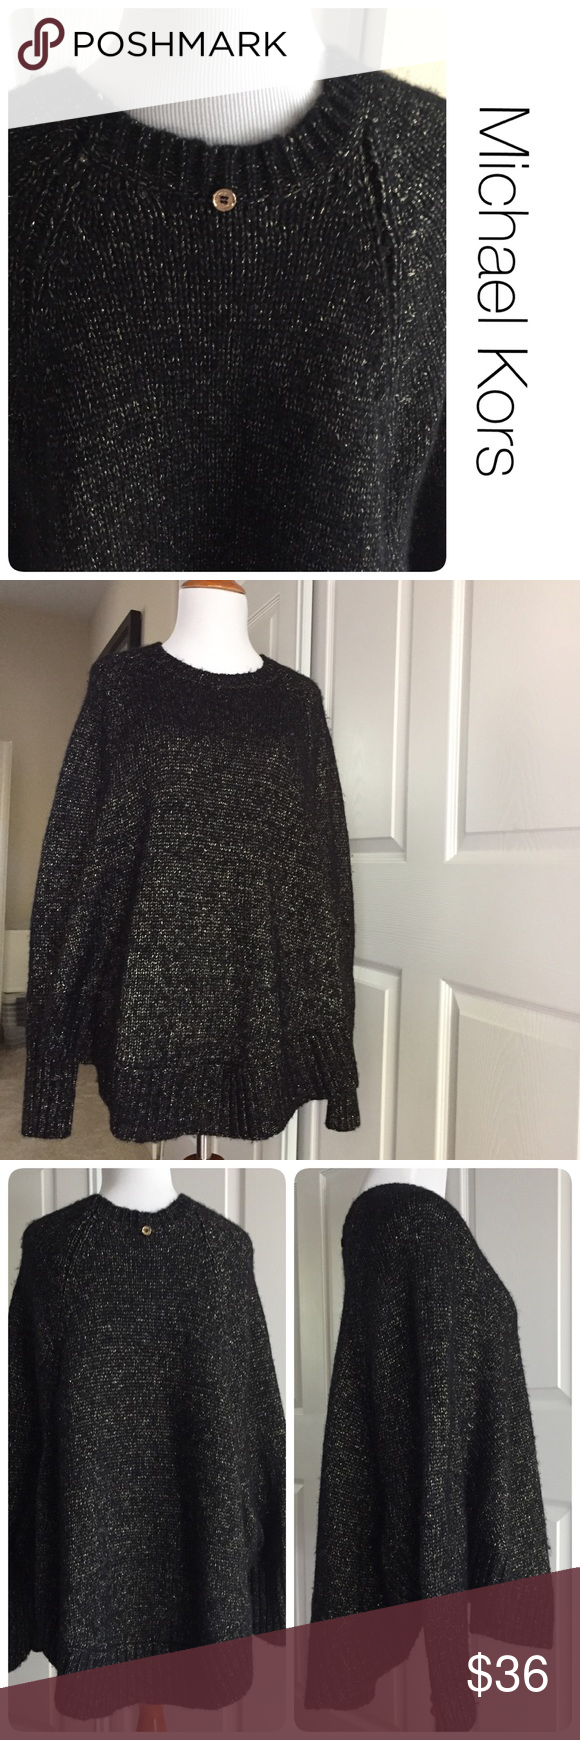 🎄Michael Kors holiday hi-lo sweater M | Stains, Holiday sweaters ...